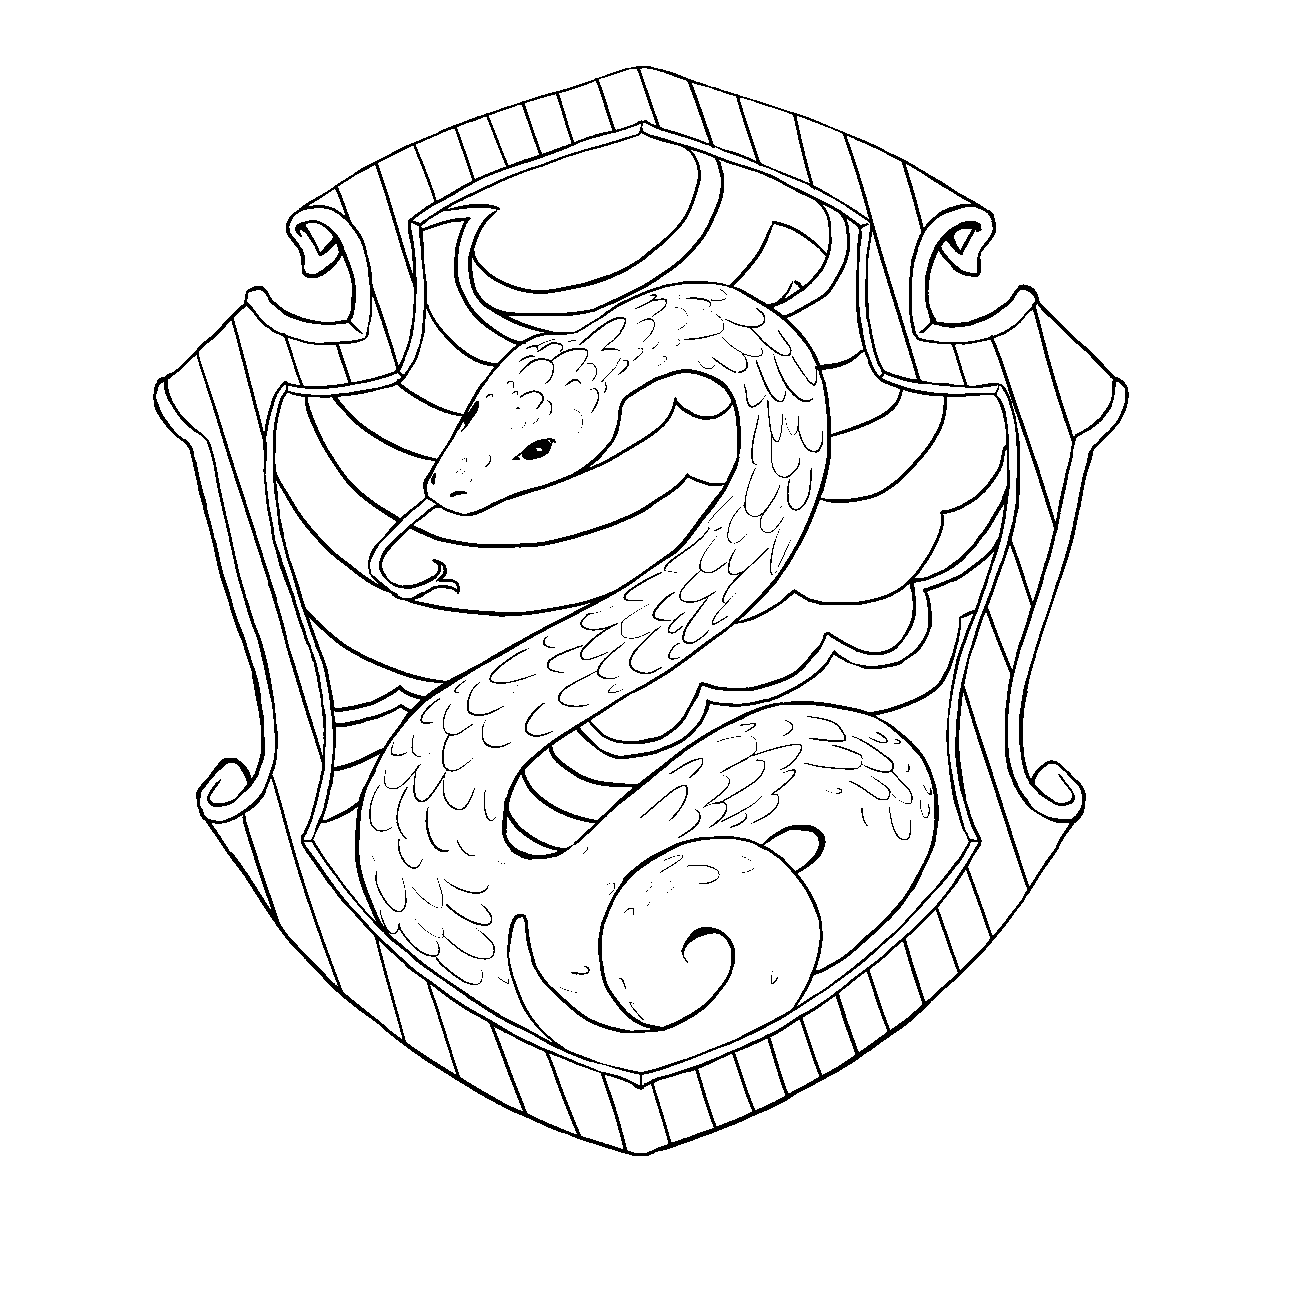 Line Art House Png : Image slytherin lineart harry potter wiki fandom